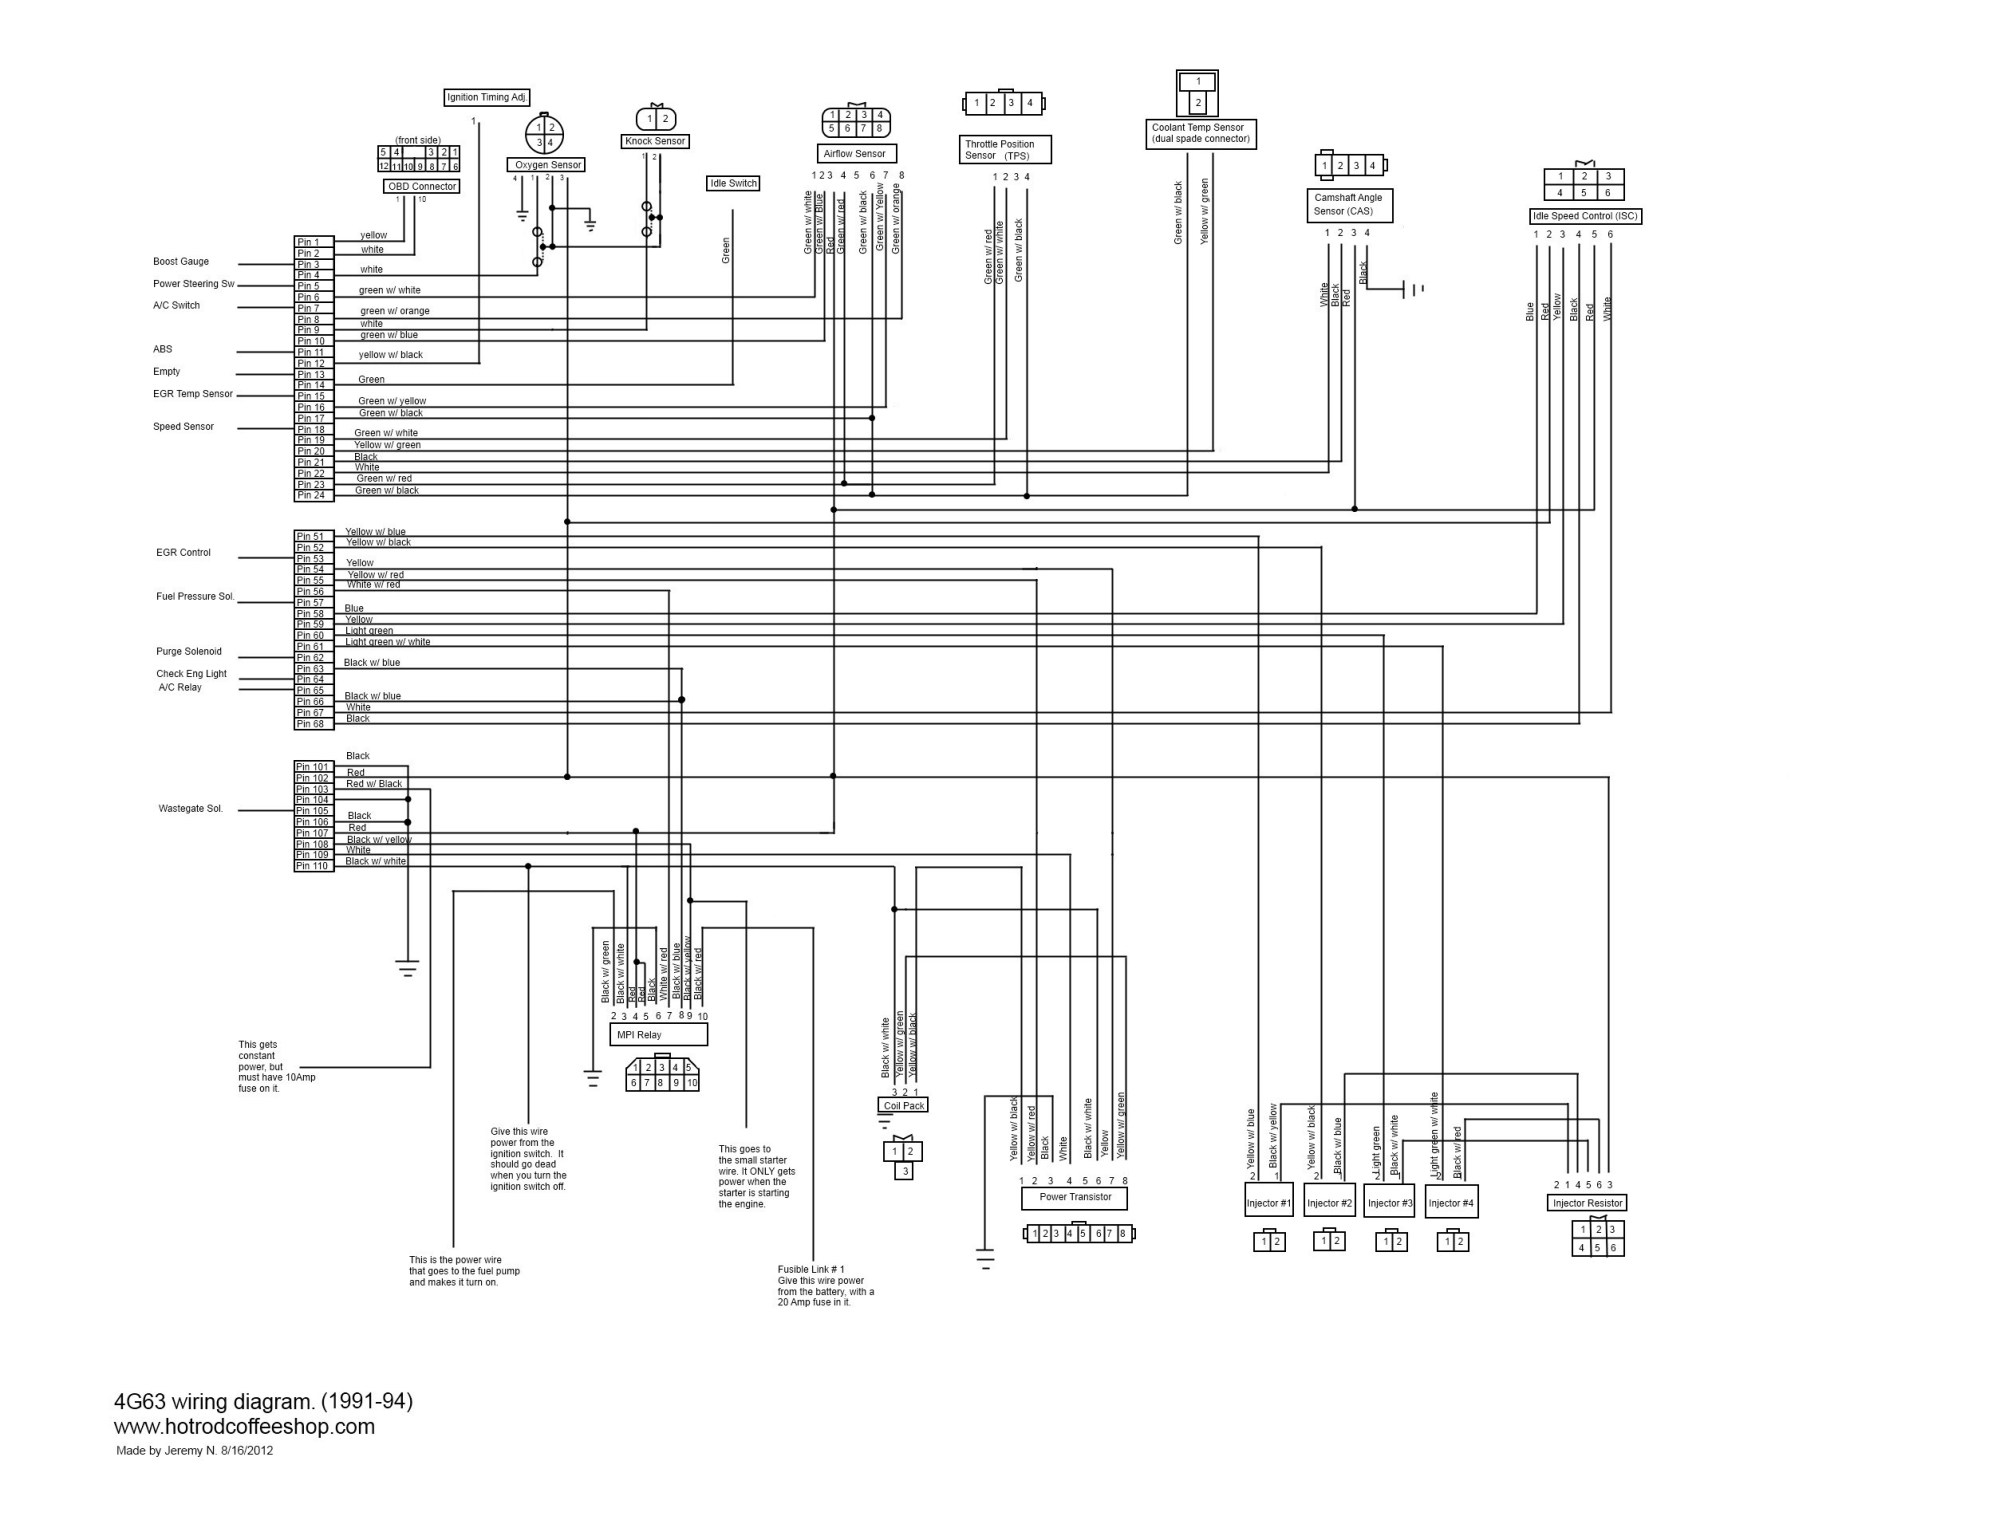 hight resolution of 2001 mitsubishi engine diagram data diagram schematic 2001 mitsubishi galant engine diagram detailed wiring diagram toolbox